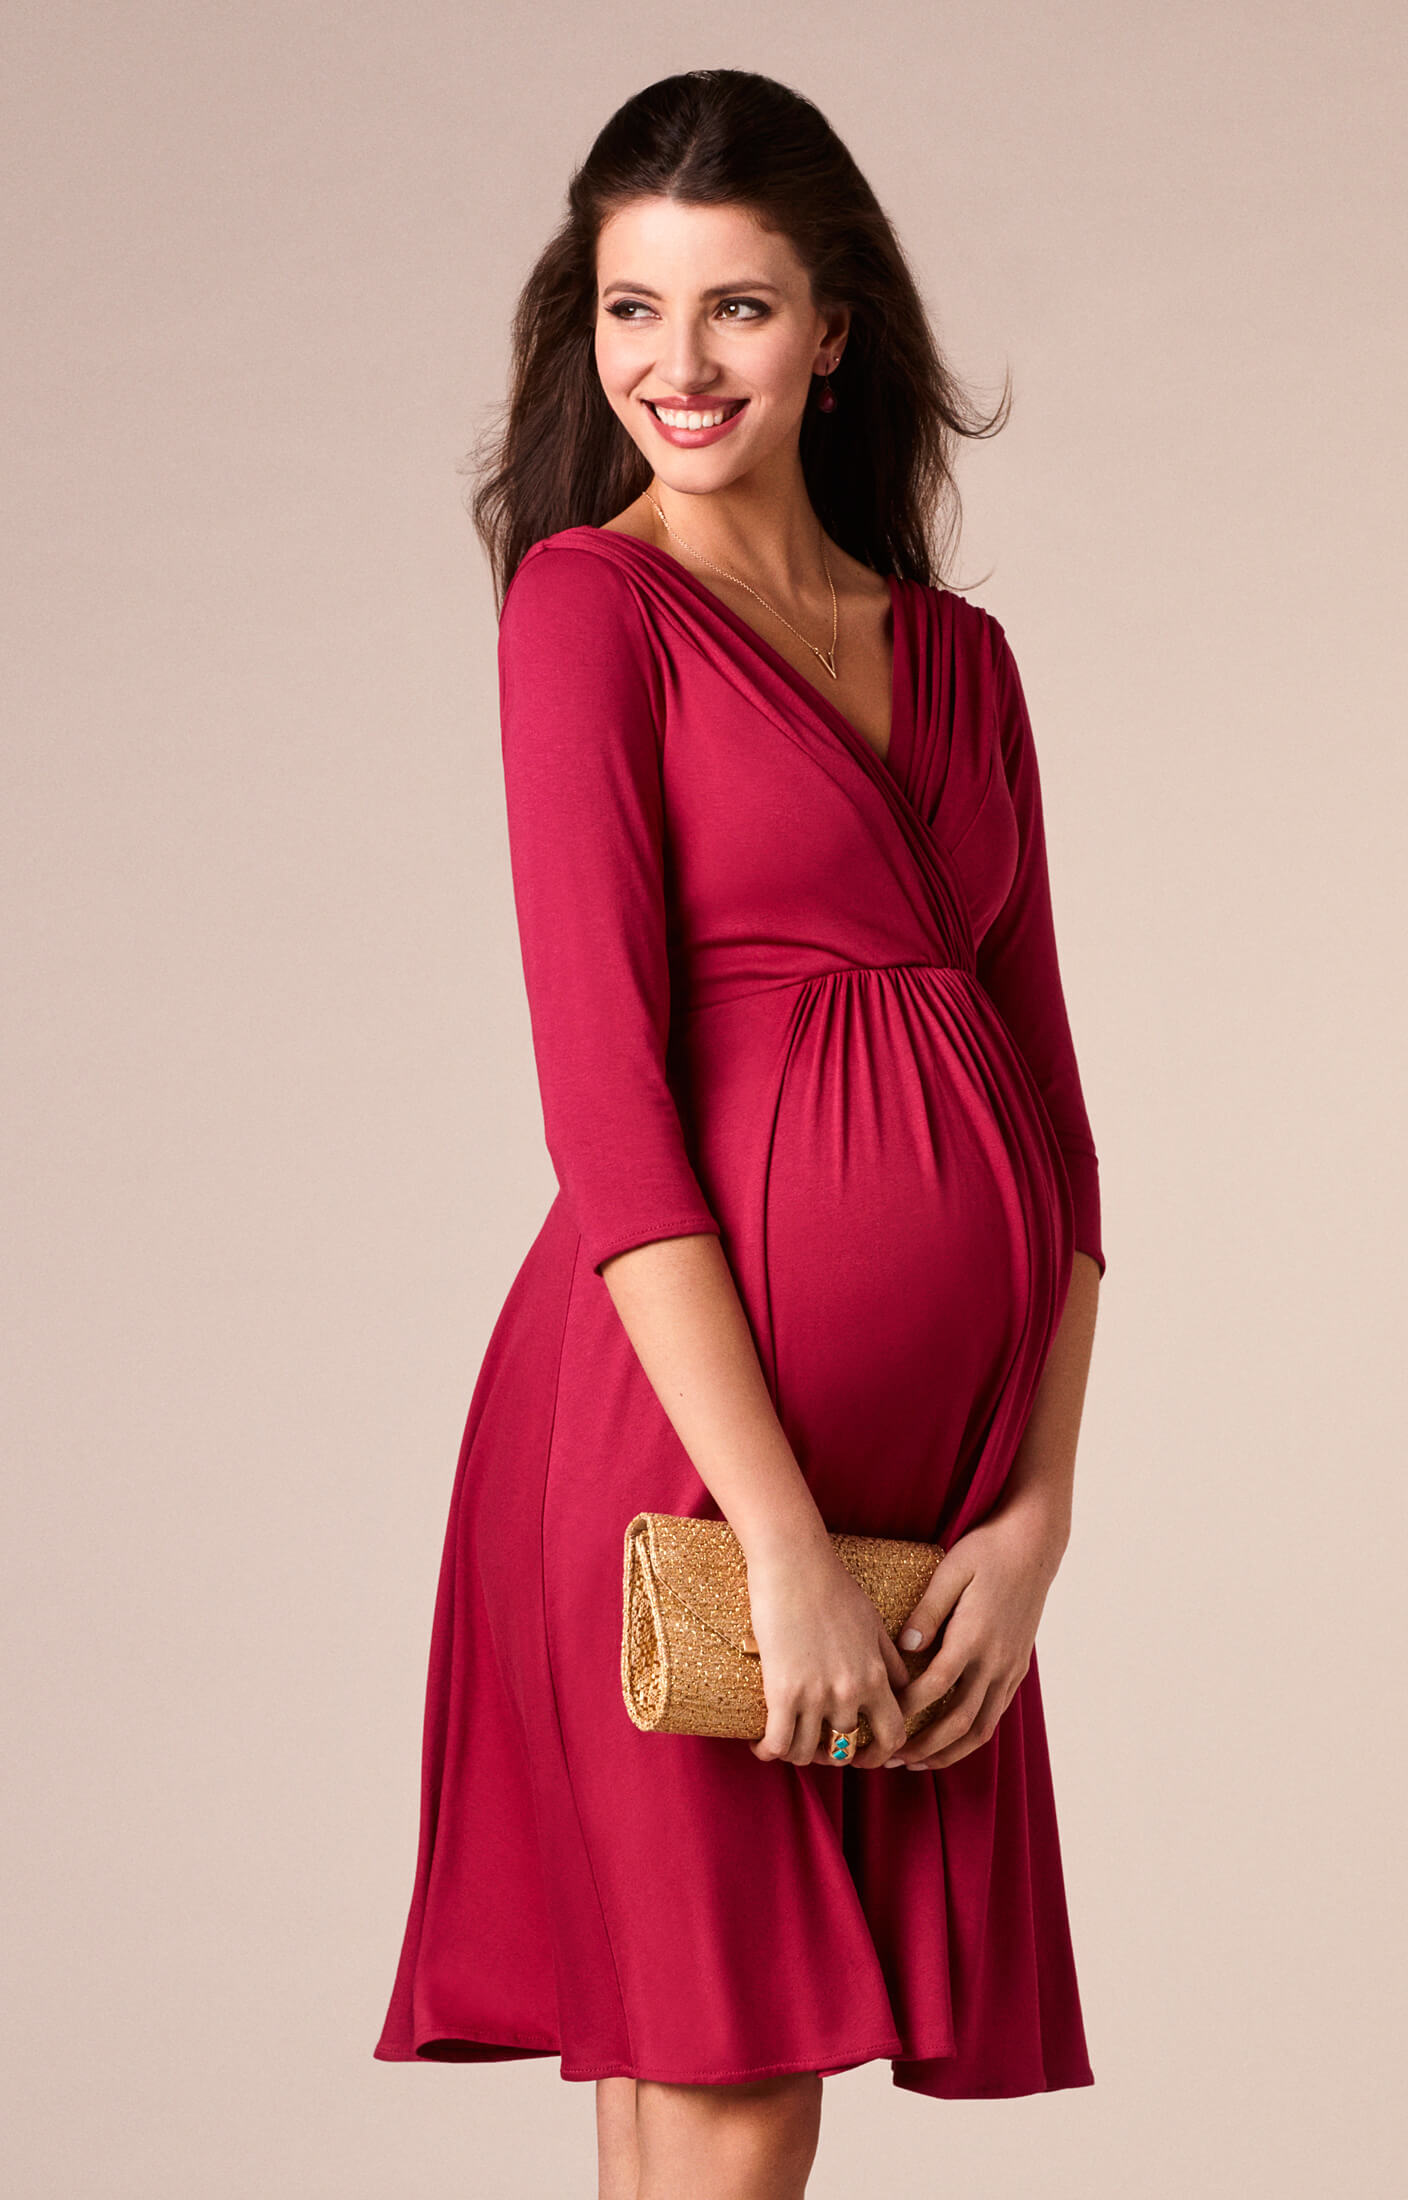 Willow Maternity Dress Raspberry Pink - Maternity Wedding Dresses ...